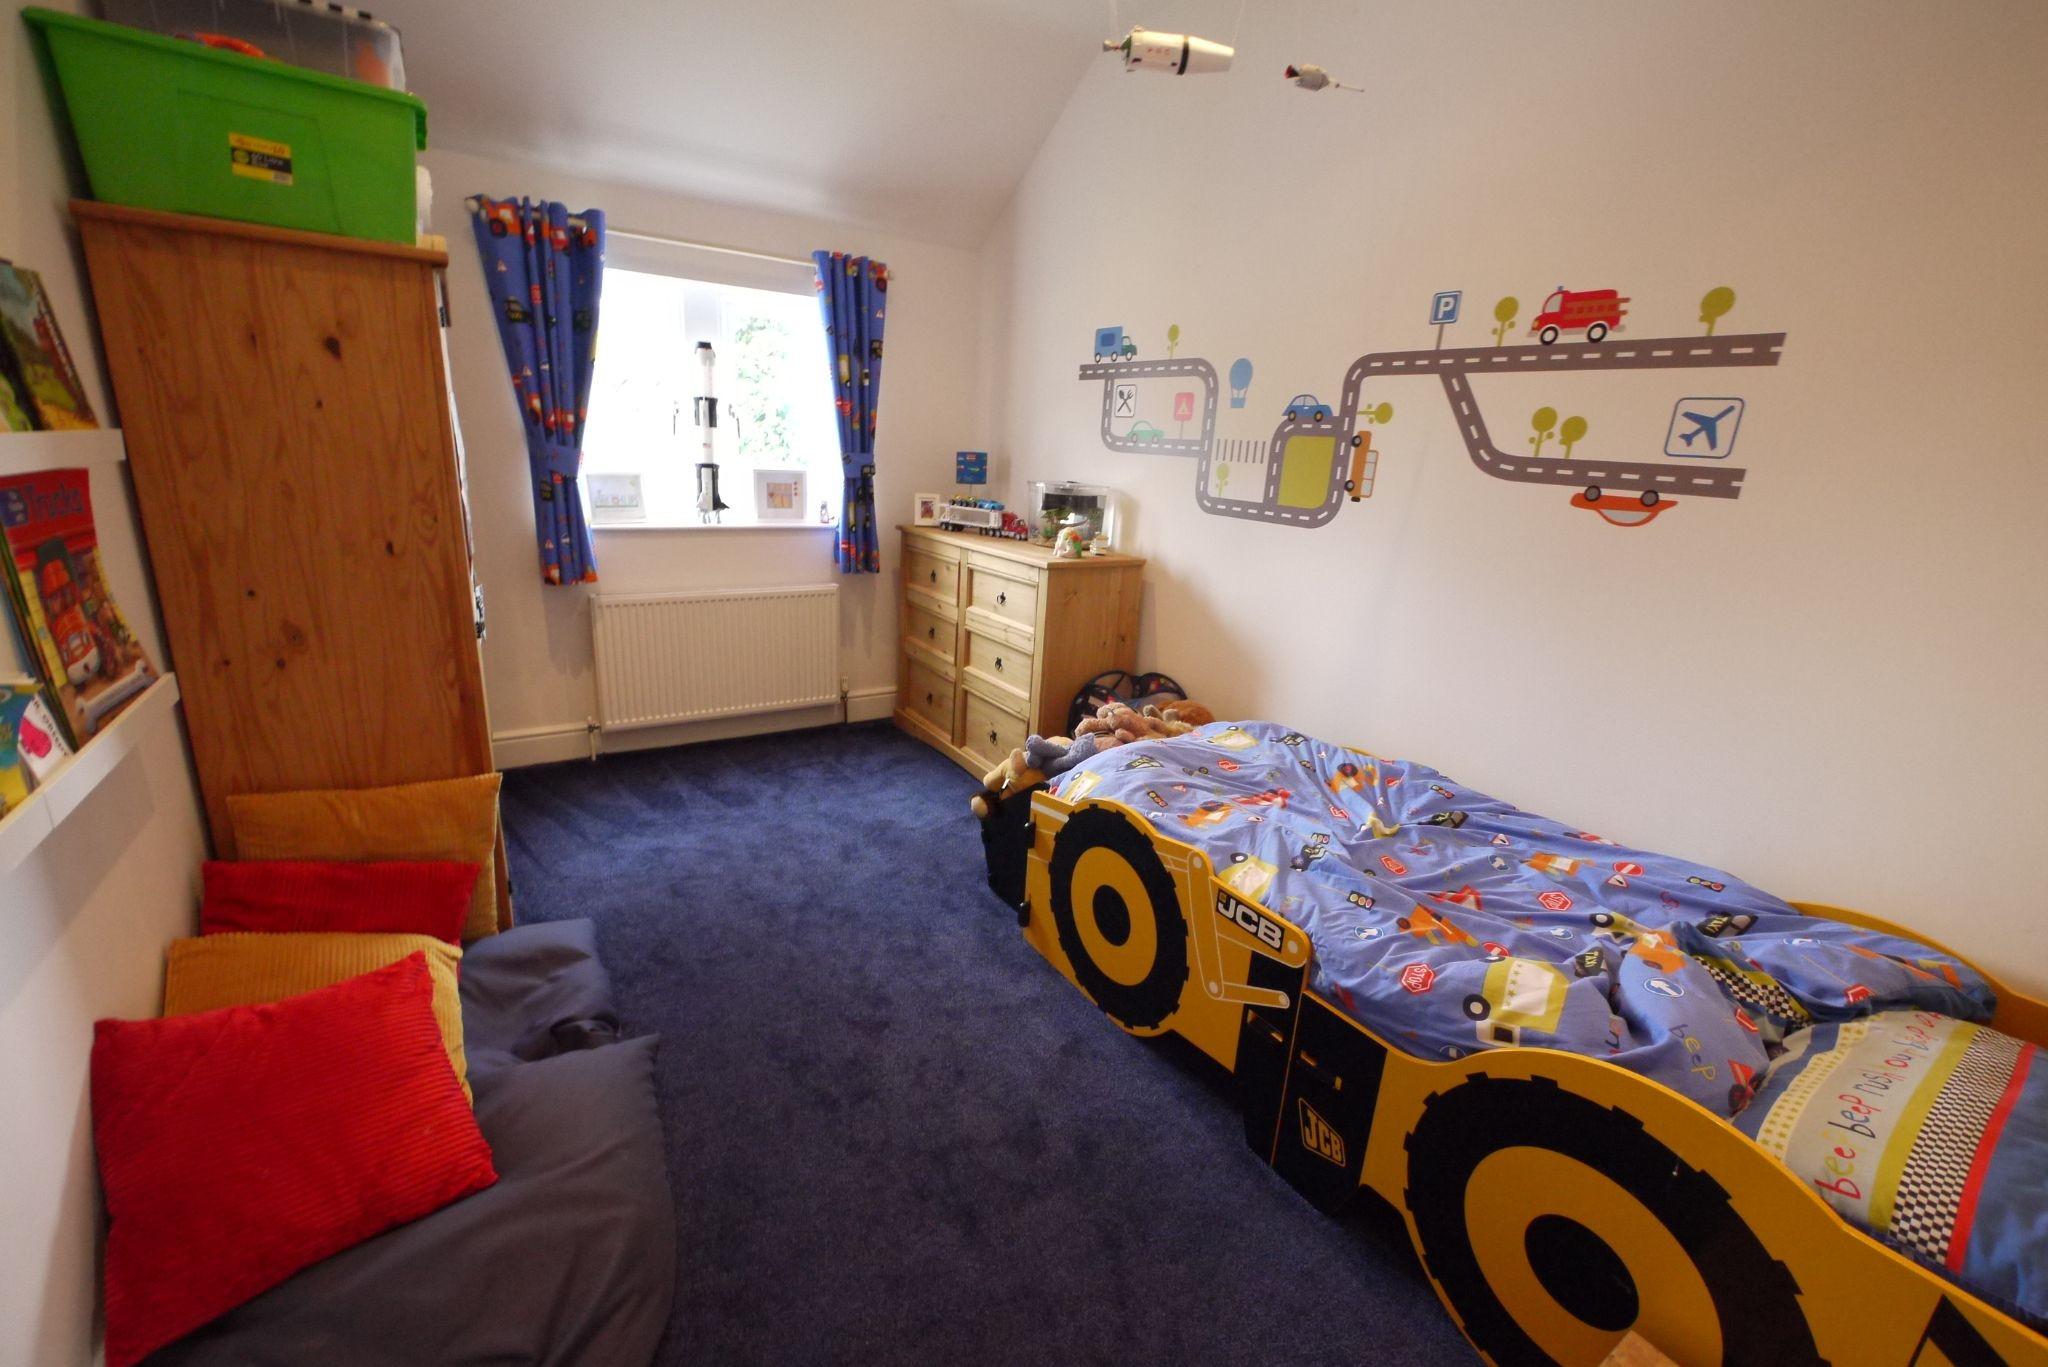 4 bedroom detached house For Sale in Brighouse - Photograph 8.